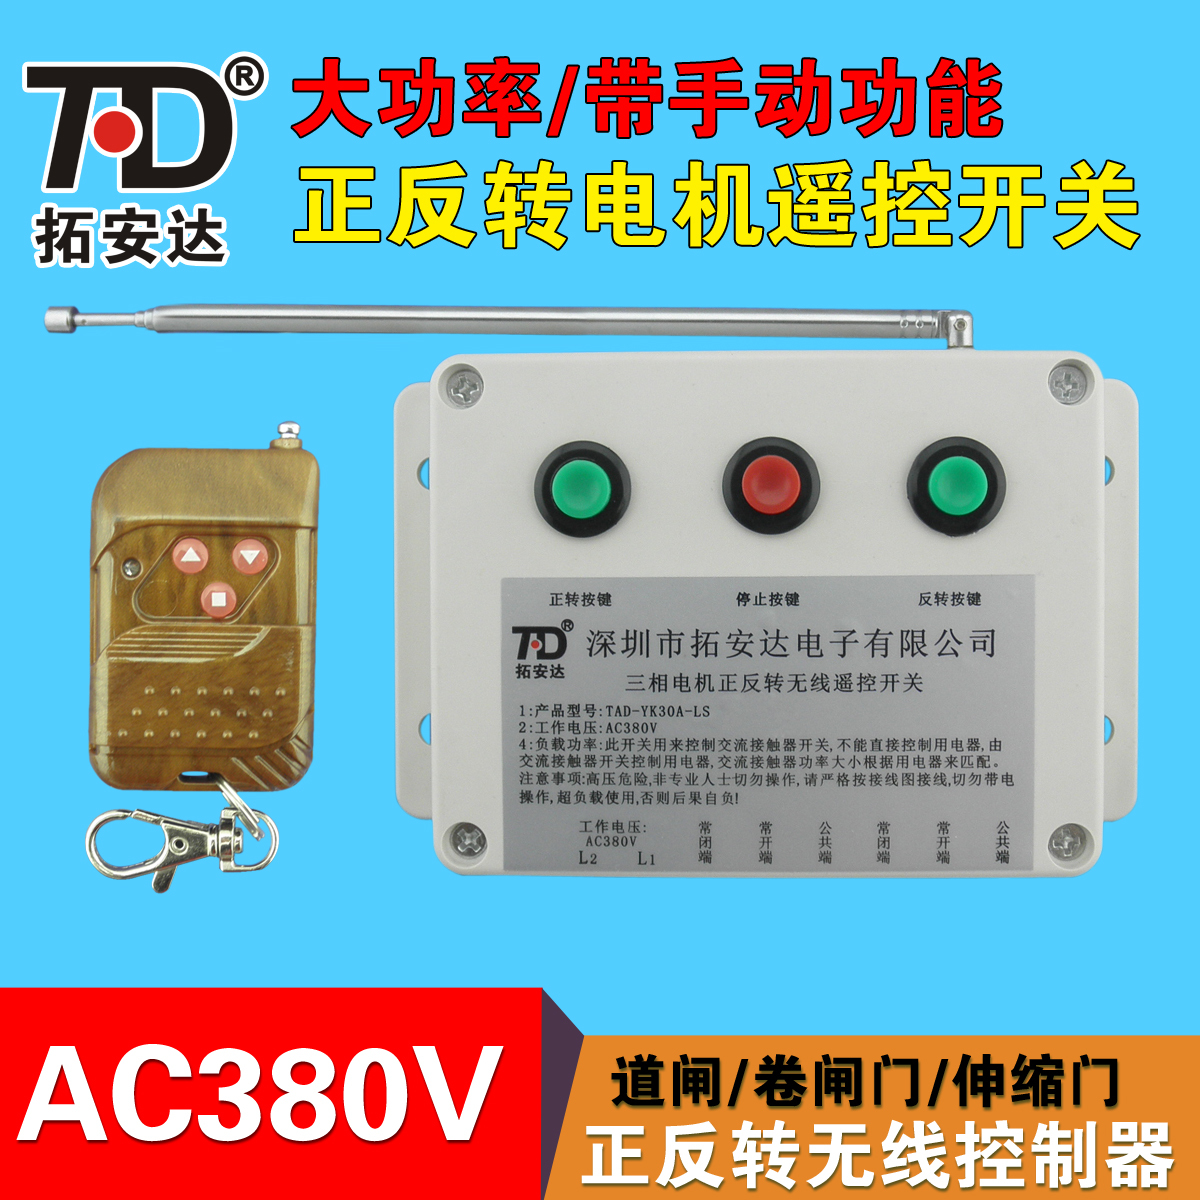 380V Correct Reversal Electric Will Shed / Road Gate / Volume Sluice Gate / Bring Operation Control Switch Road SWITCH deadpool volume 8 operation annihilation